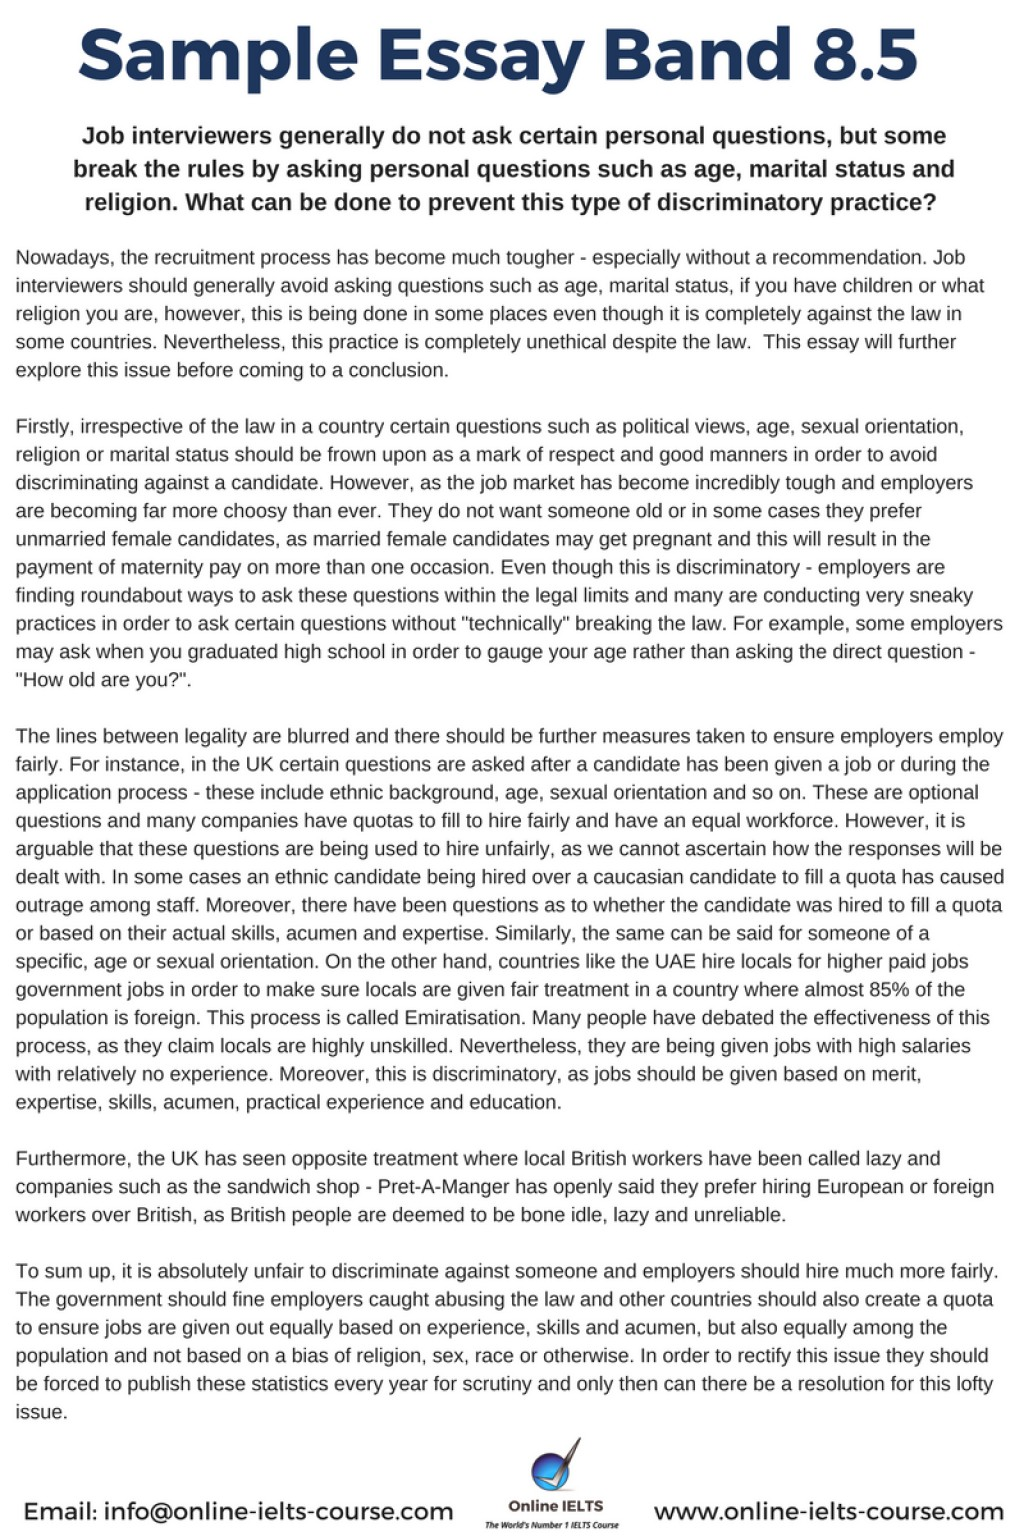 Money and education essay